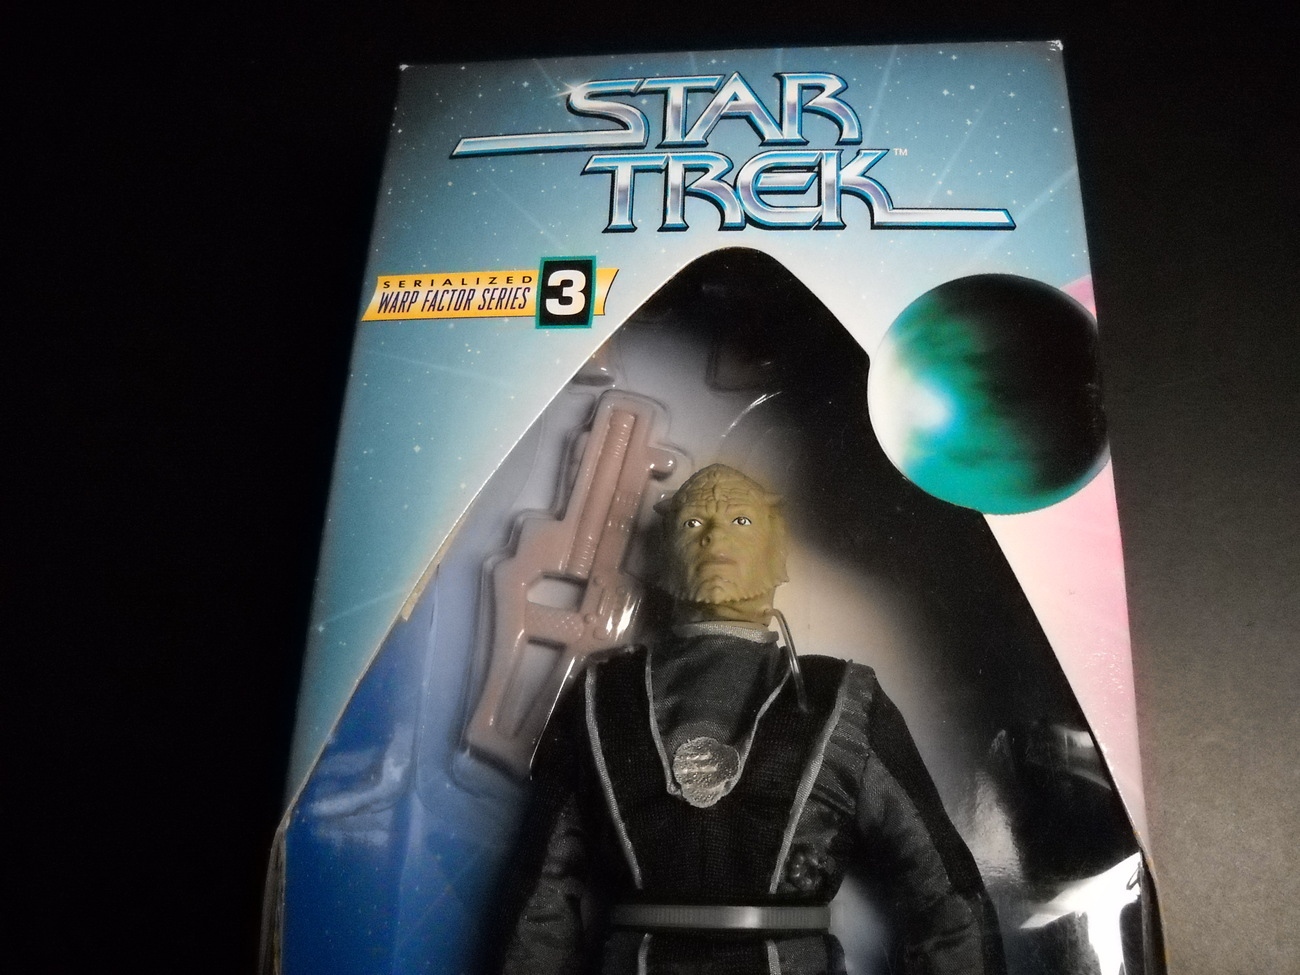 Star Trek Warp Factor Three Jem'Hadar Soldier Deep Space 9 Playmates Sealed Box